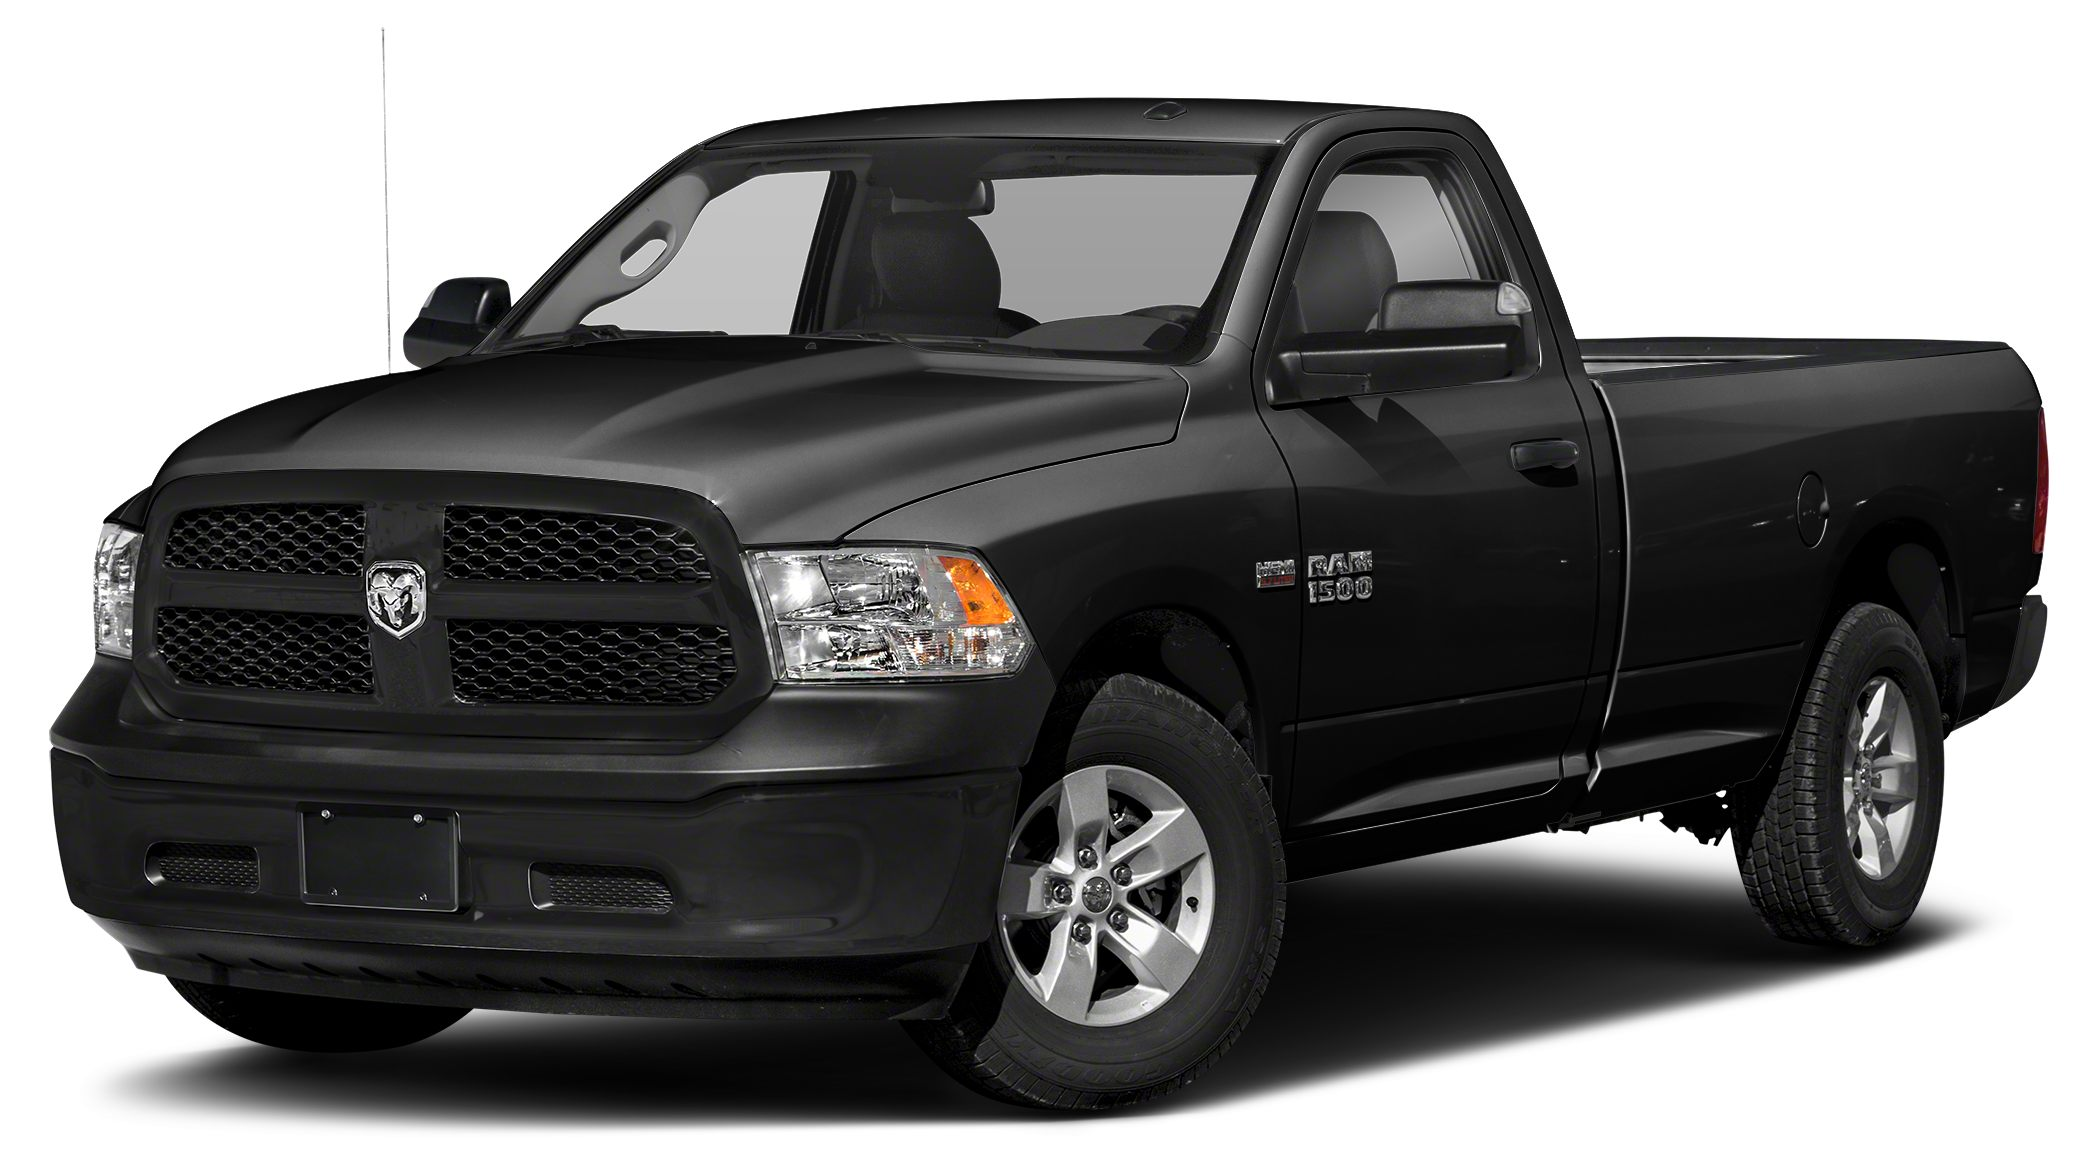 2016 RAM 1500 TradesmanExpress Just Arrived This 1500 is for RAM fans the world over seeking a